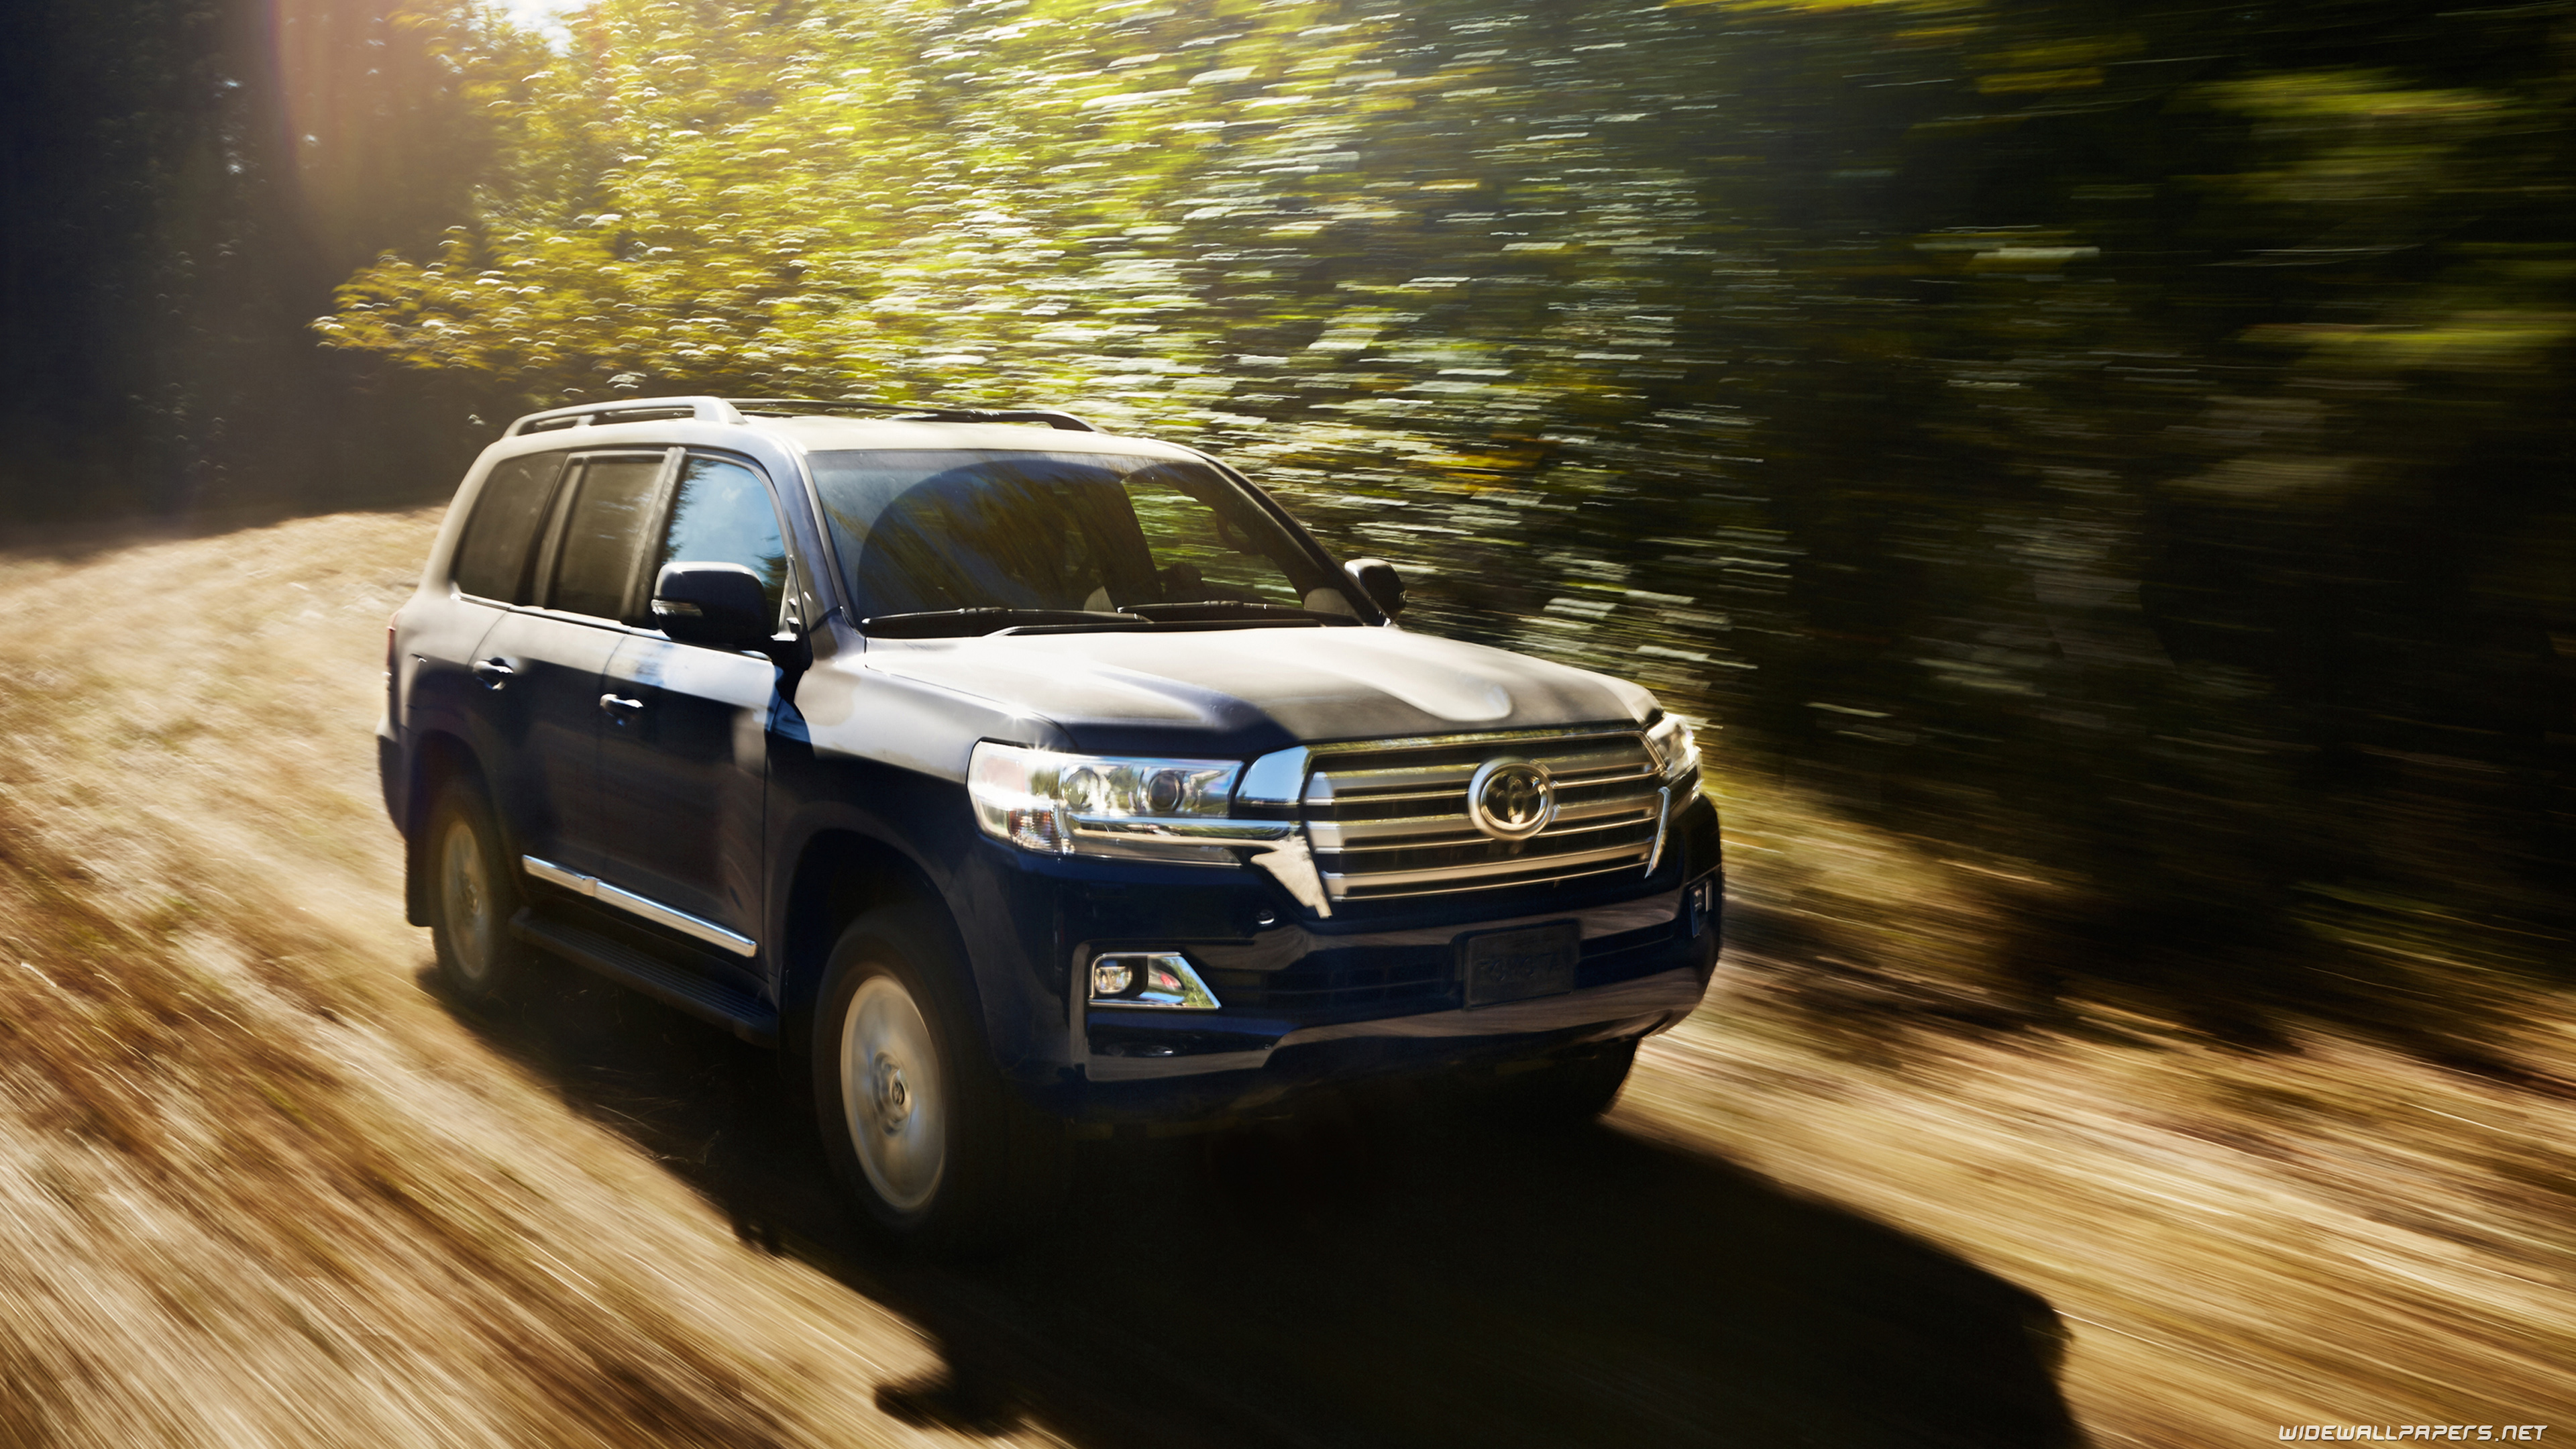 Toyota Land Cruiser 200 US Spec Car Wallpapers ...